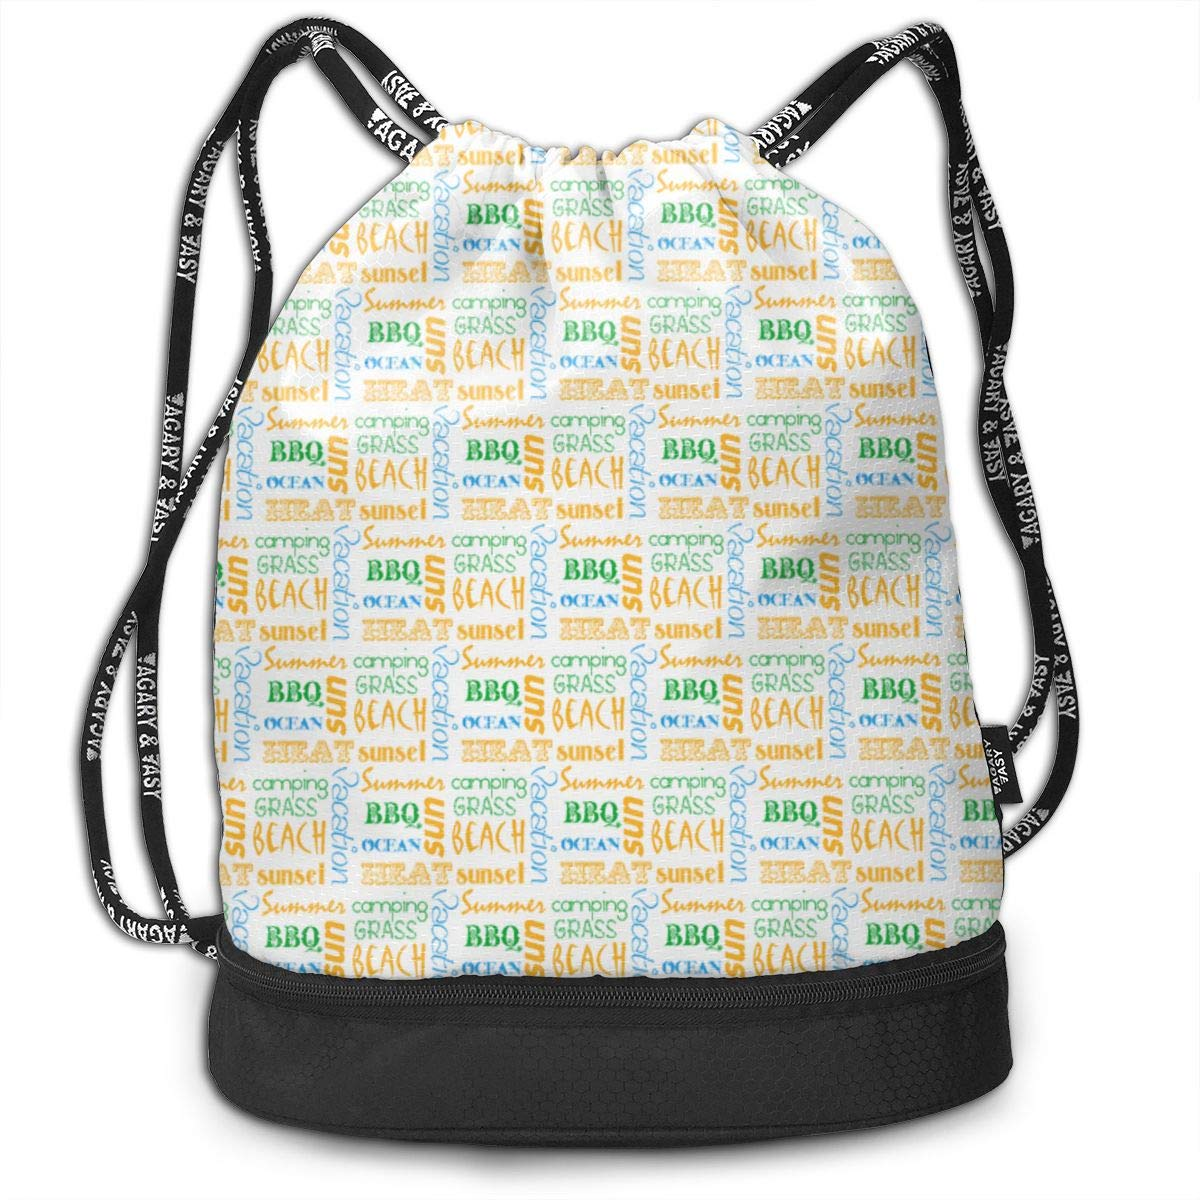 Summerwords Drawstring Backpack Sports Athletic Gym Cinch Sack String Storage Bags for Hiking Travel Beach